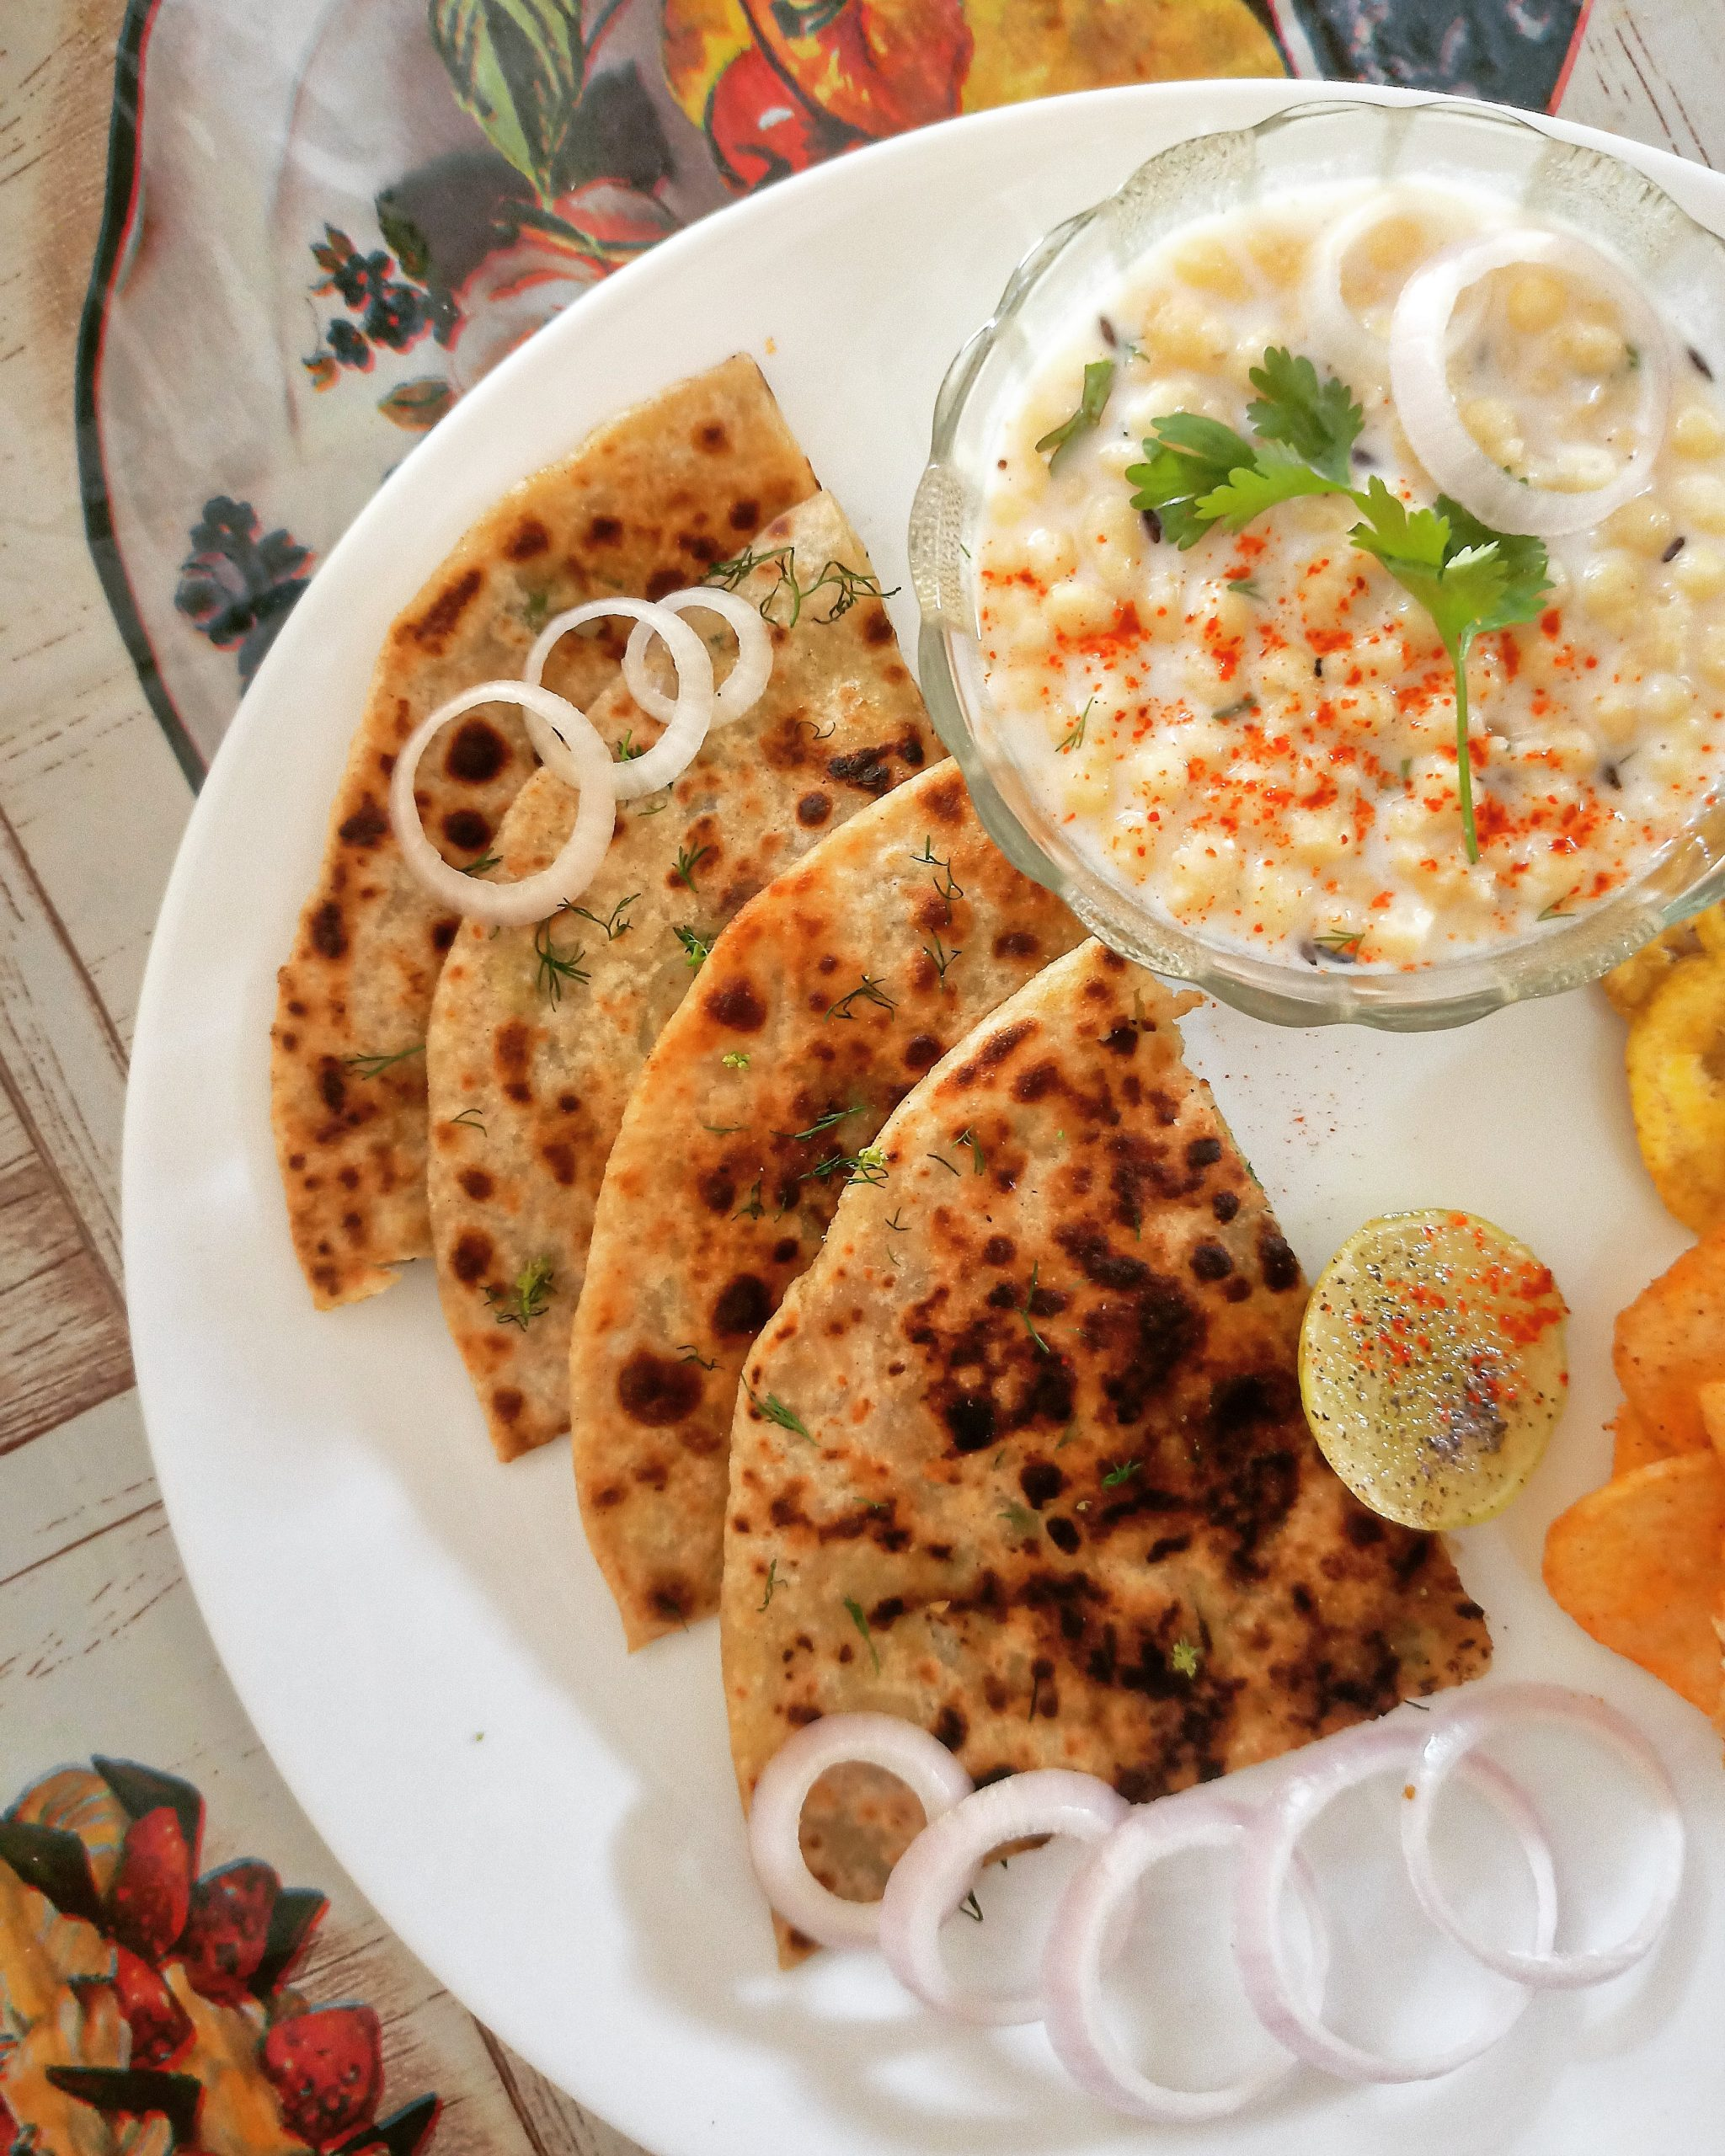 Aloo paratha with curd and salad